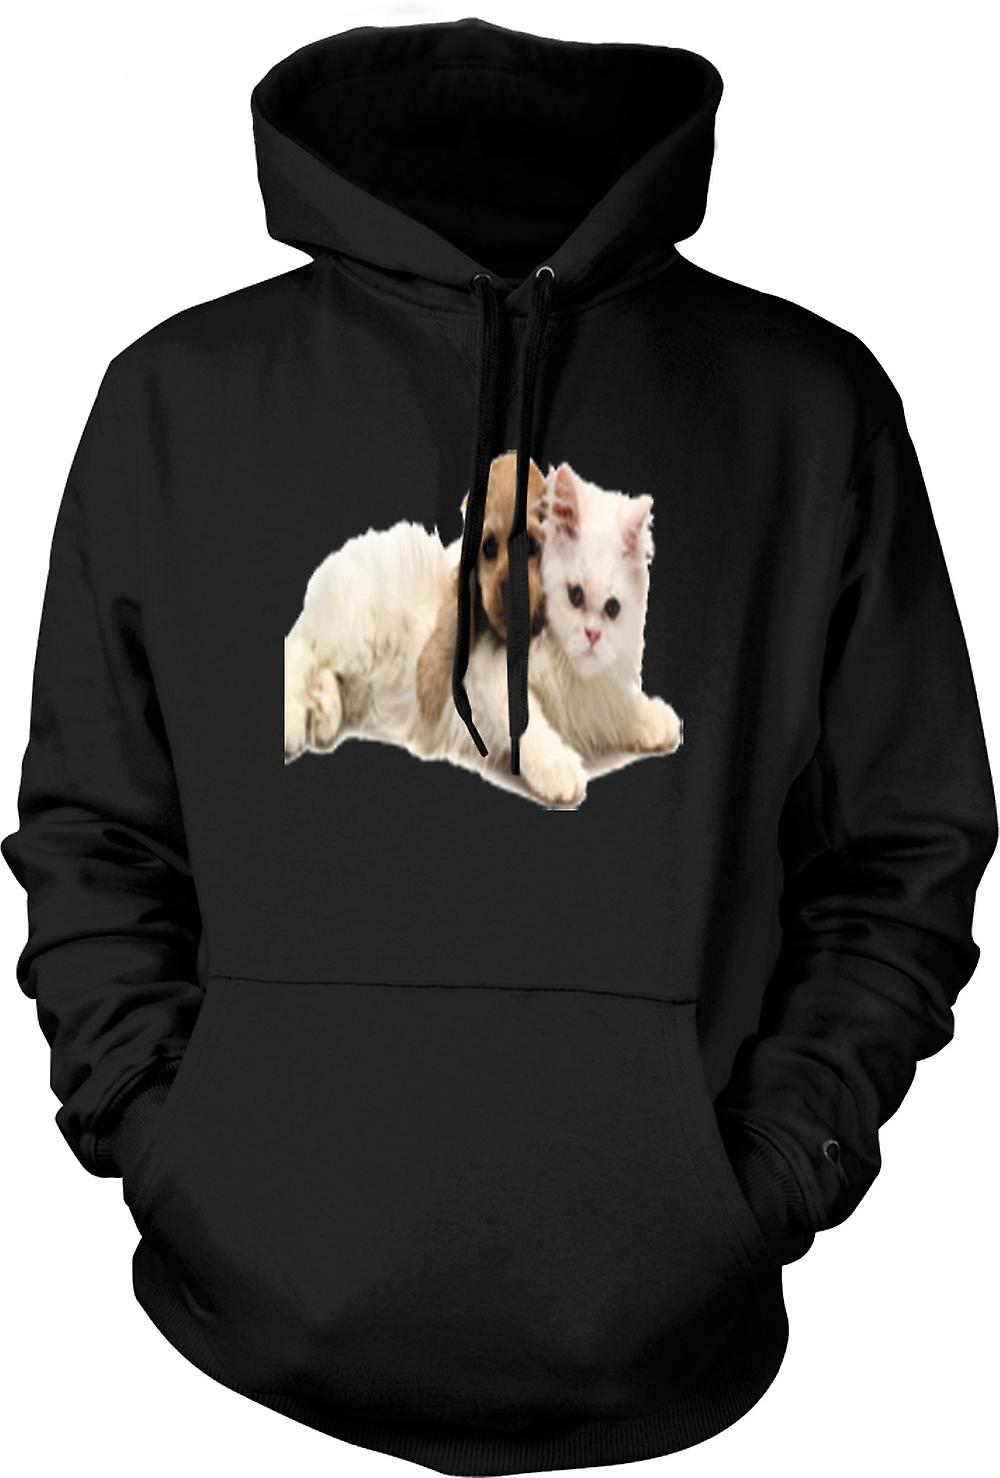 Kids Hoodie - Cute Cat And Dog Portrait